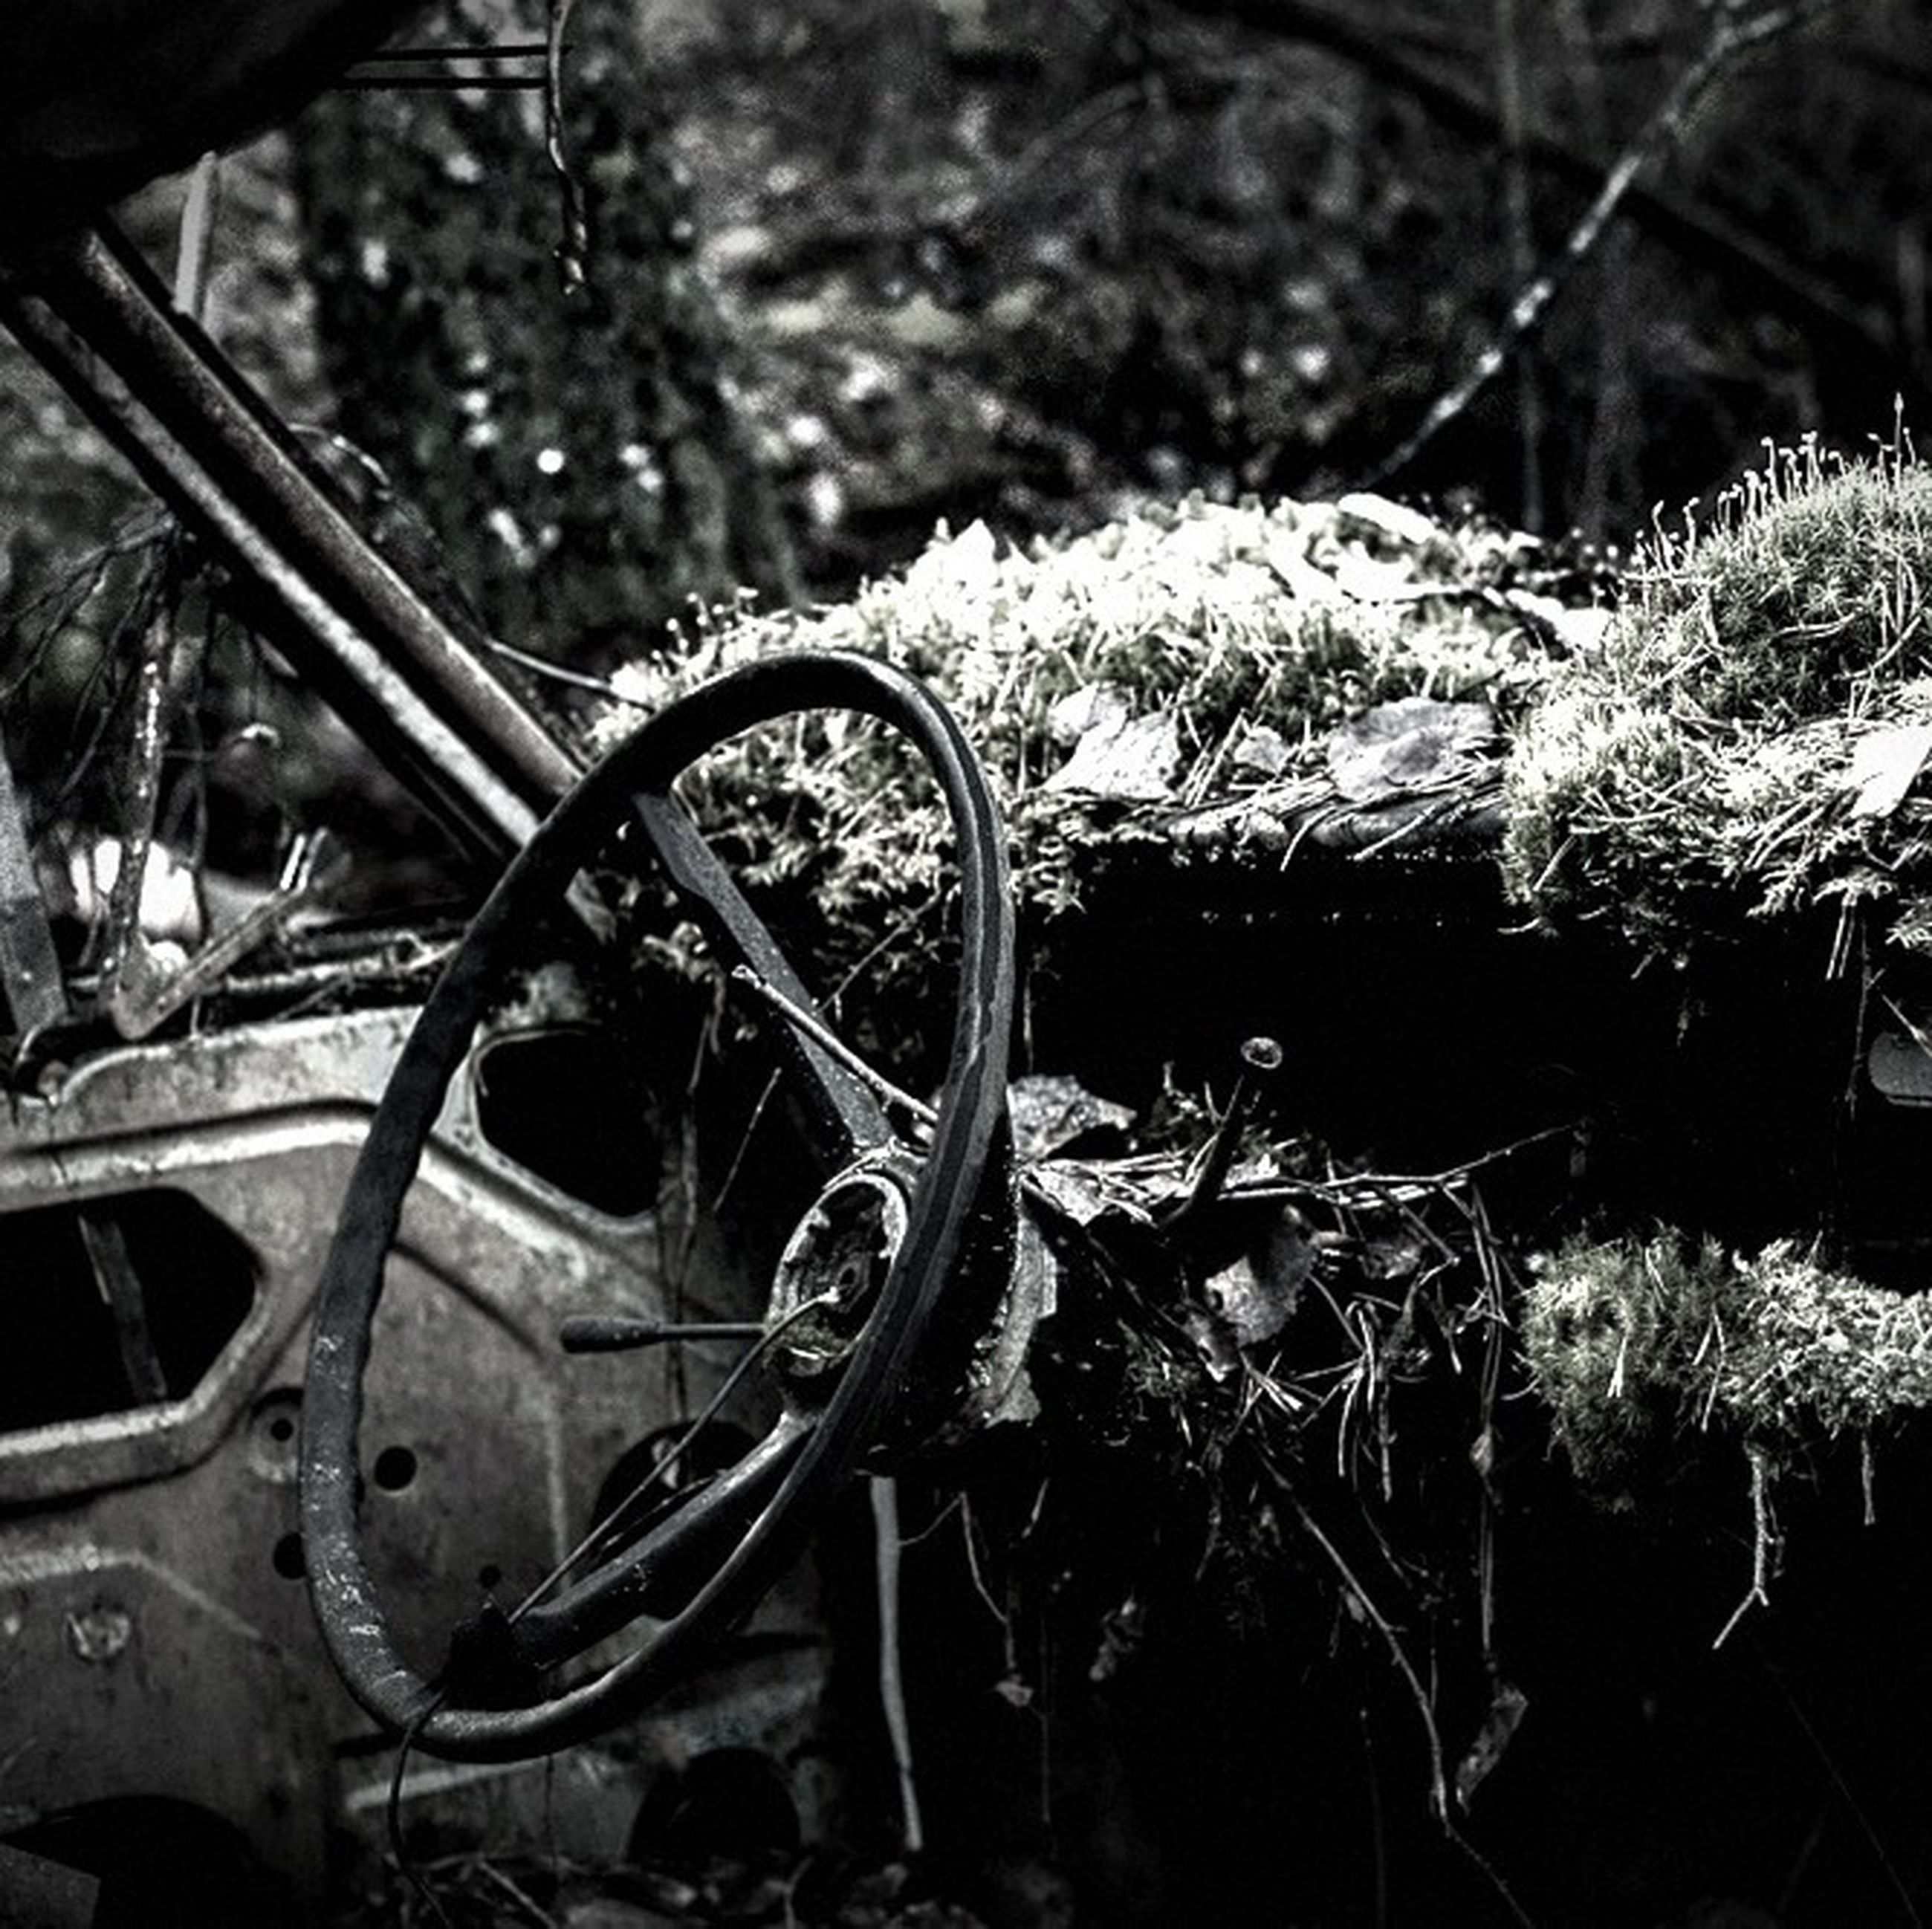 transportation, land vehicle, mode of transport, bicycle, plant, wheel, close-up, focus on foreground, growth, selective focus, stationary, outdoors, abandoned, field, grass, day, no people, part of, old, nature